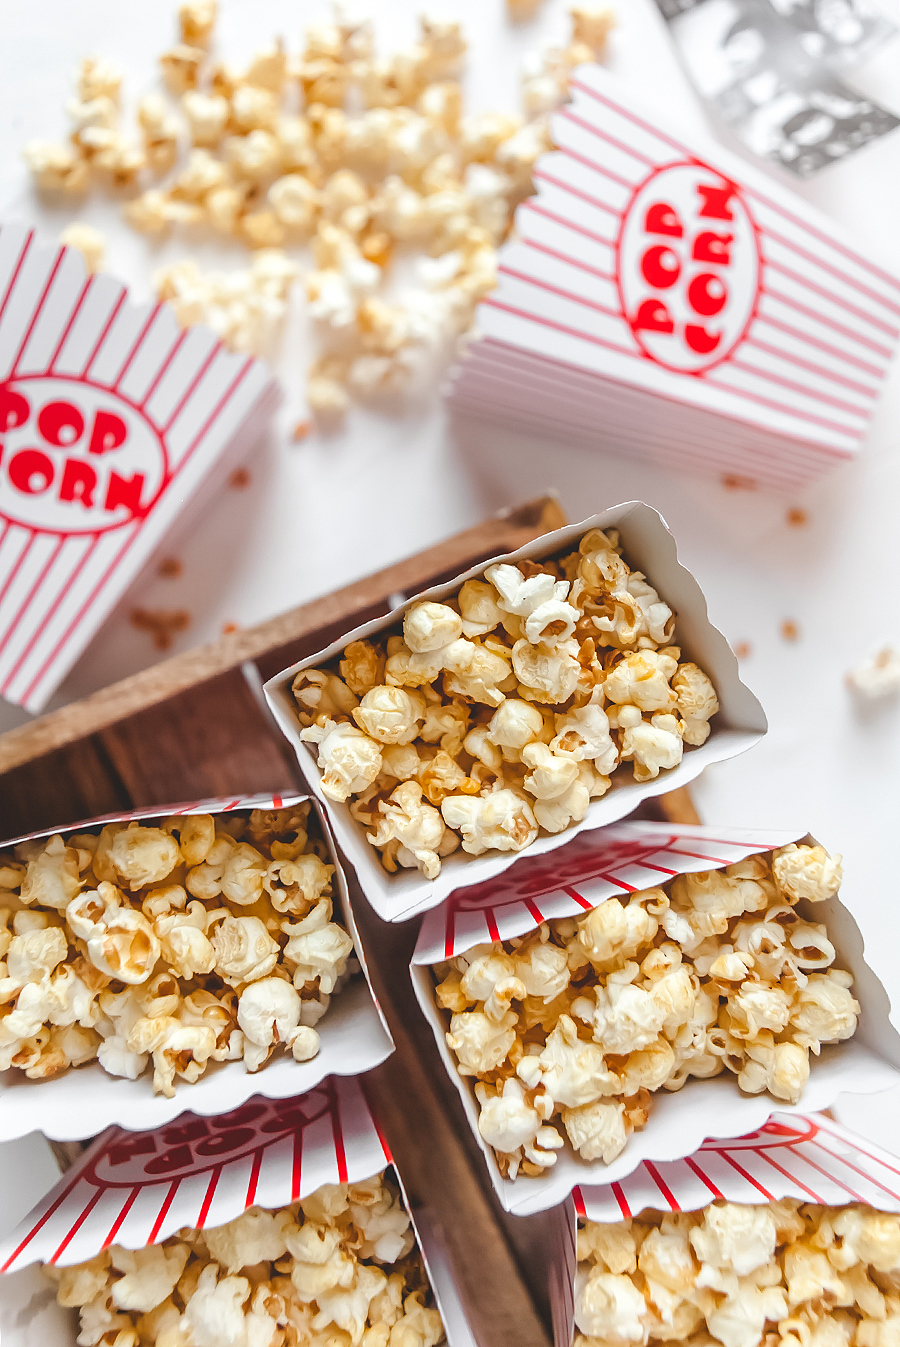 Film business and popcorn 44